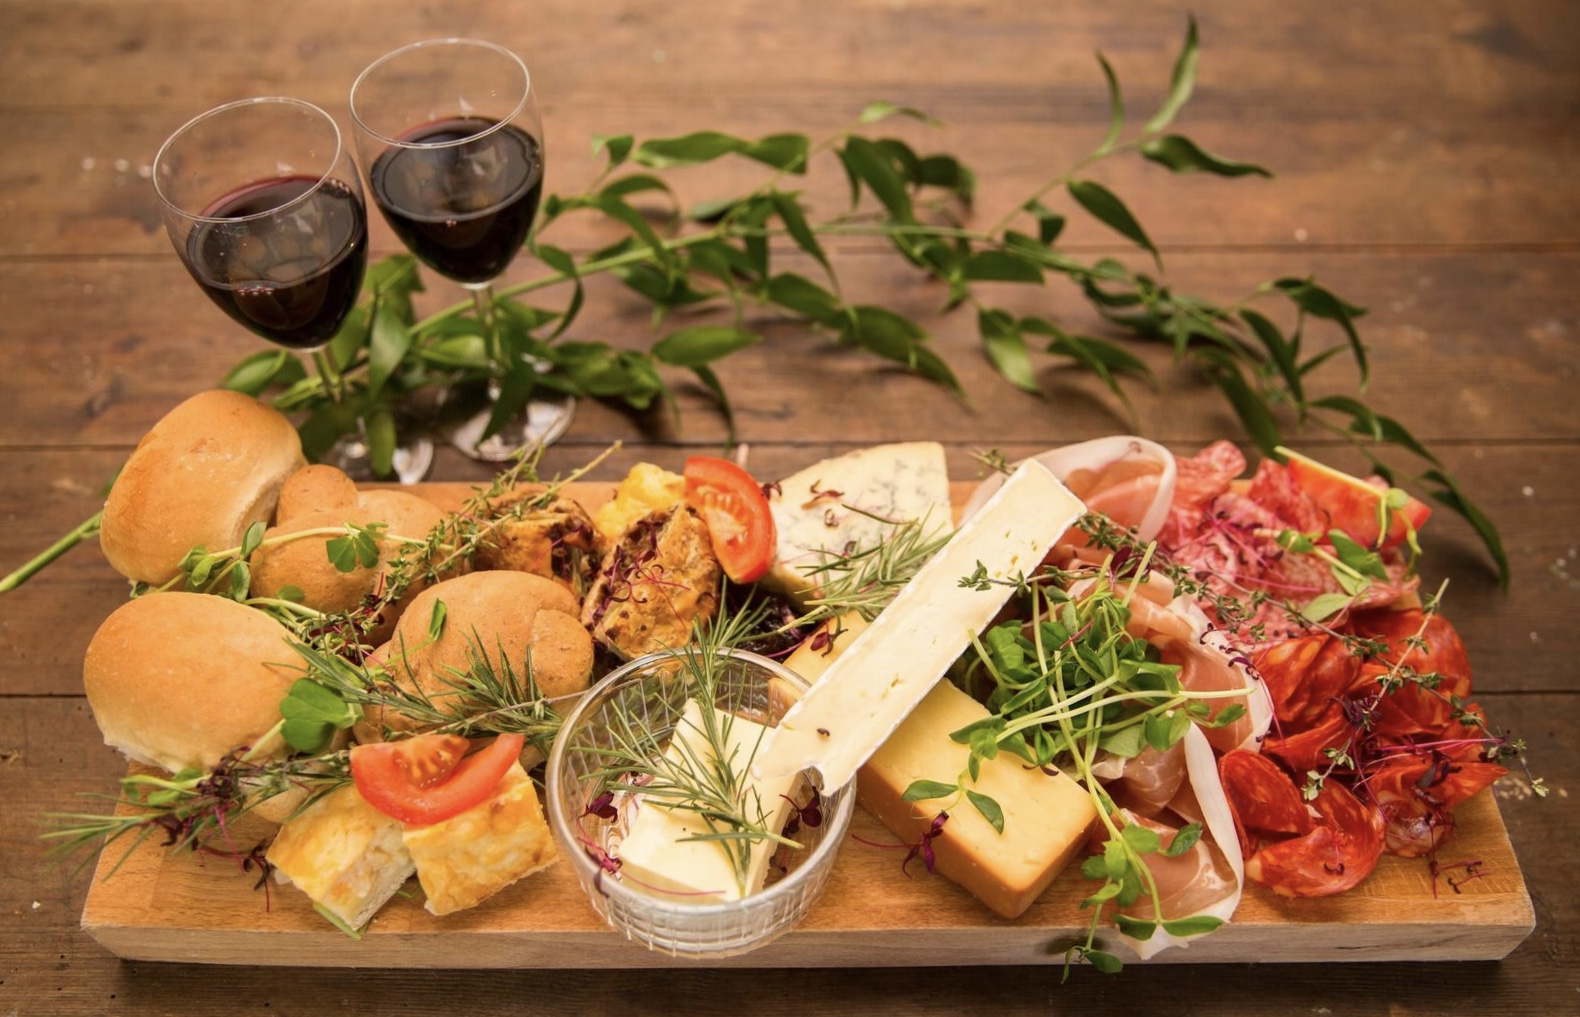 evening food ideas northside farm wedding grazing table